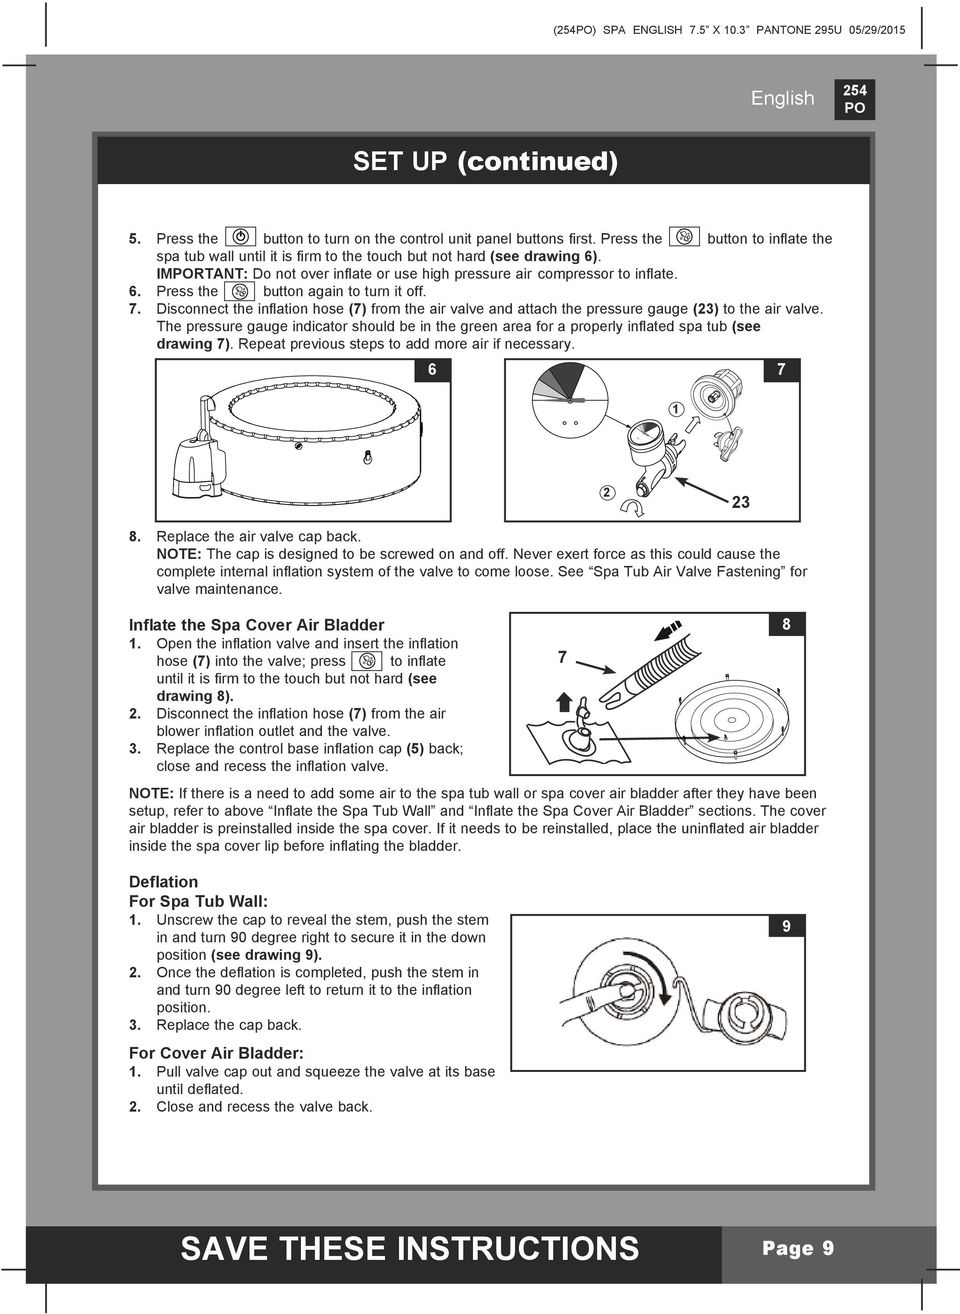 OWNER S MANUAL. PureSpa. SSP-H V~, 60Hz, 12A - PDF Free Download on hot tub pump diagram, hot tub specification, electrical outlets diagram, hot tub wiring 220, hot tub connectors, hot tub hook up diagram, hot tub trouble shooting, hot tub heater, hot tub heating diagram, hot tub plumbing diagram, circuit diagram, ceiling fan installation diagram, hot tub repair, hot tub thermostat, hot tub wiring 120v, hot tub timer, hot tub parts diagram, hot tub wiring install, hot tub wiring guide, hot tub schematic,